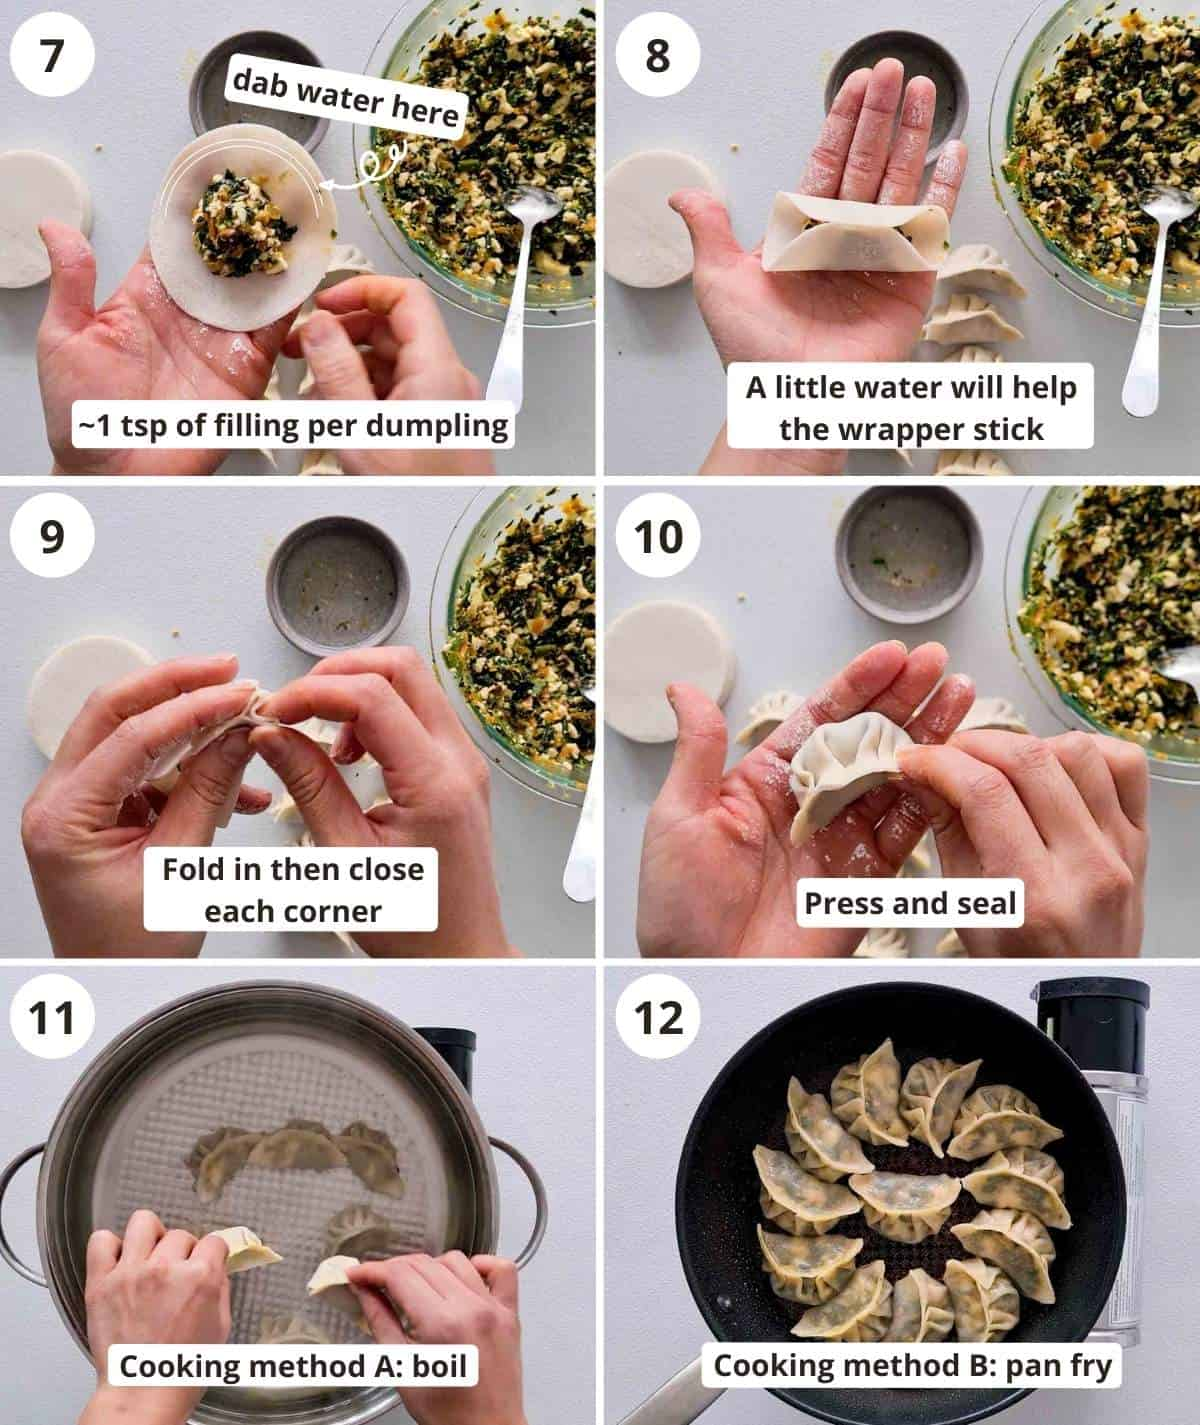 Step by step instructions for wrapping and cooking the dumplings